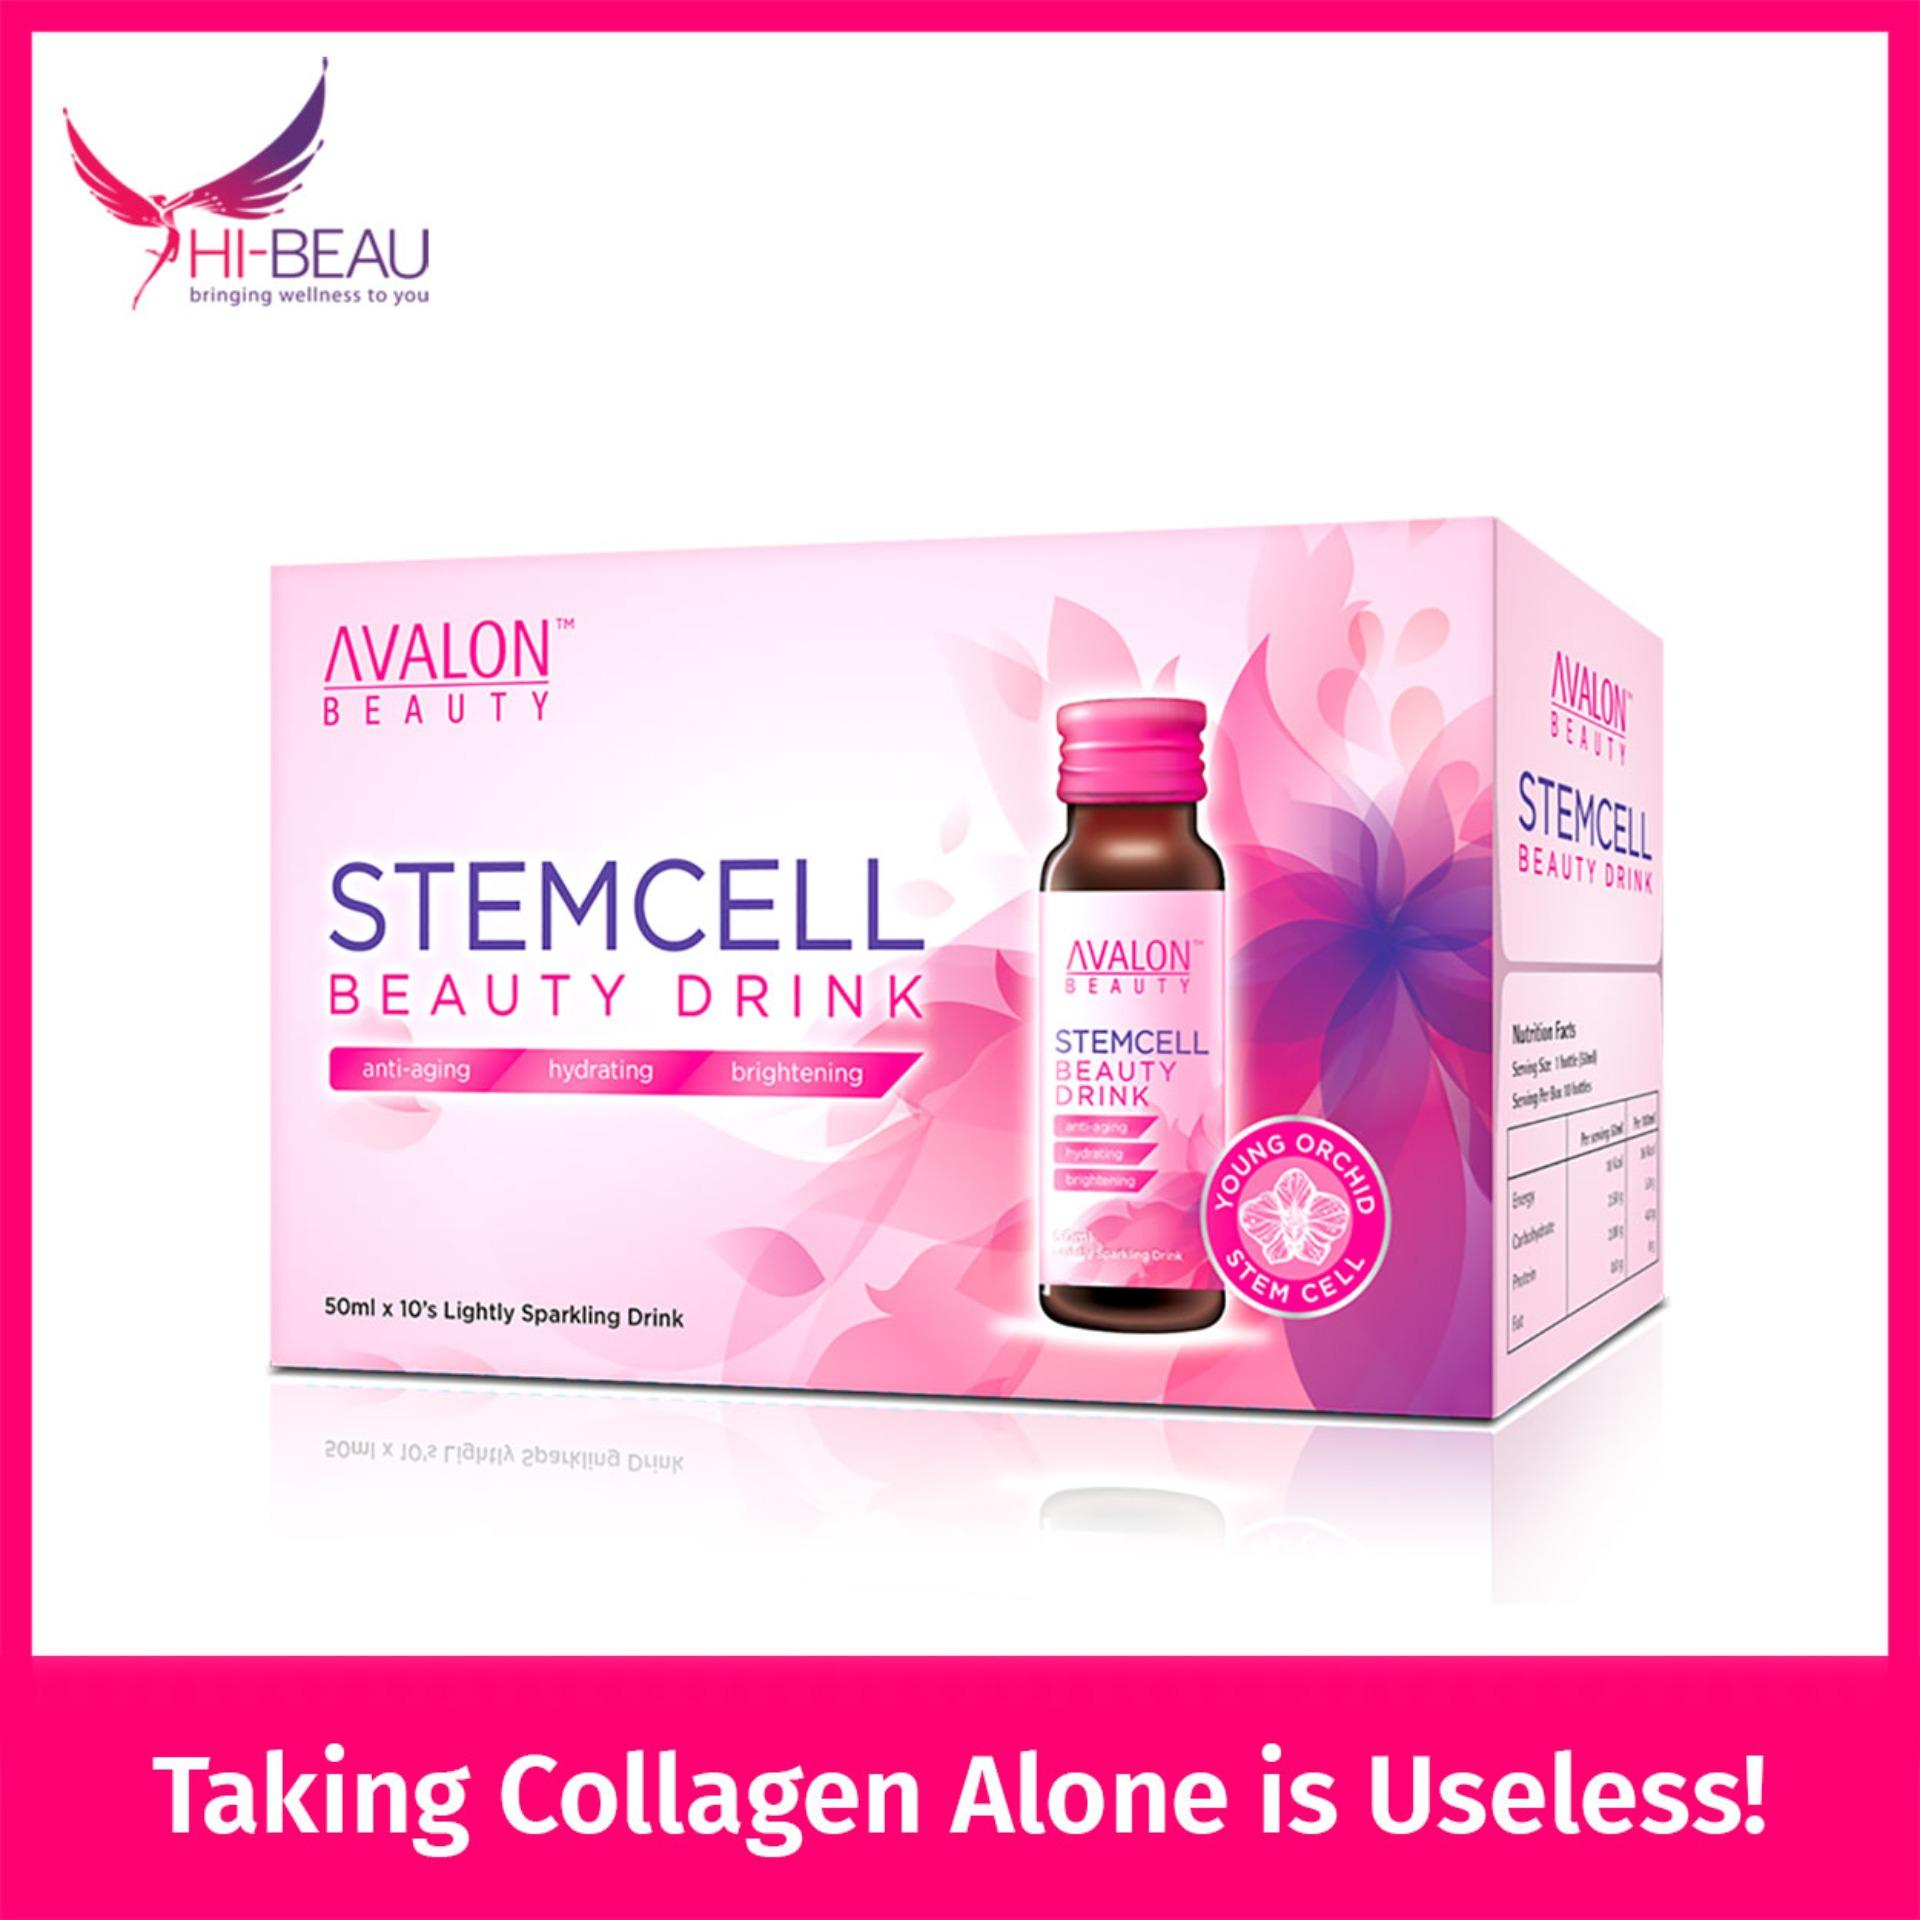 Who Sells The Cheapest Avalon Stemcell Beauty Drink Online